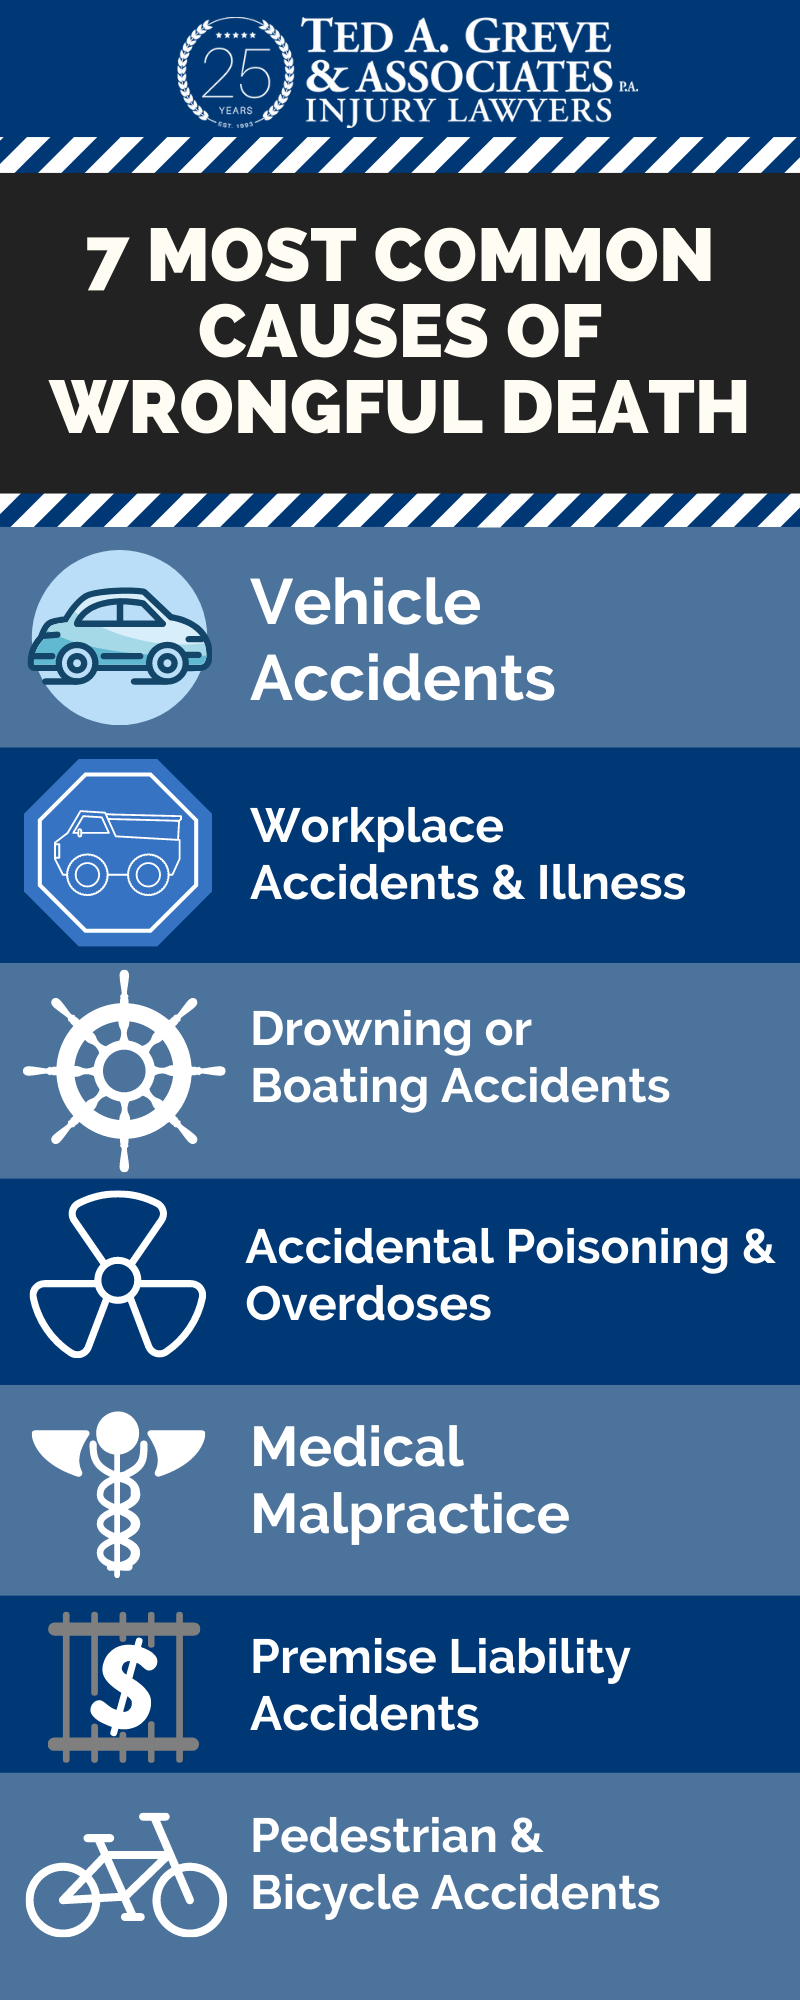 Ted Greve Augusta Wrongful Death Infographic